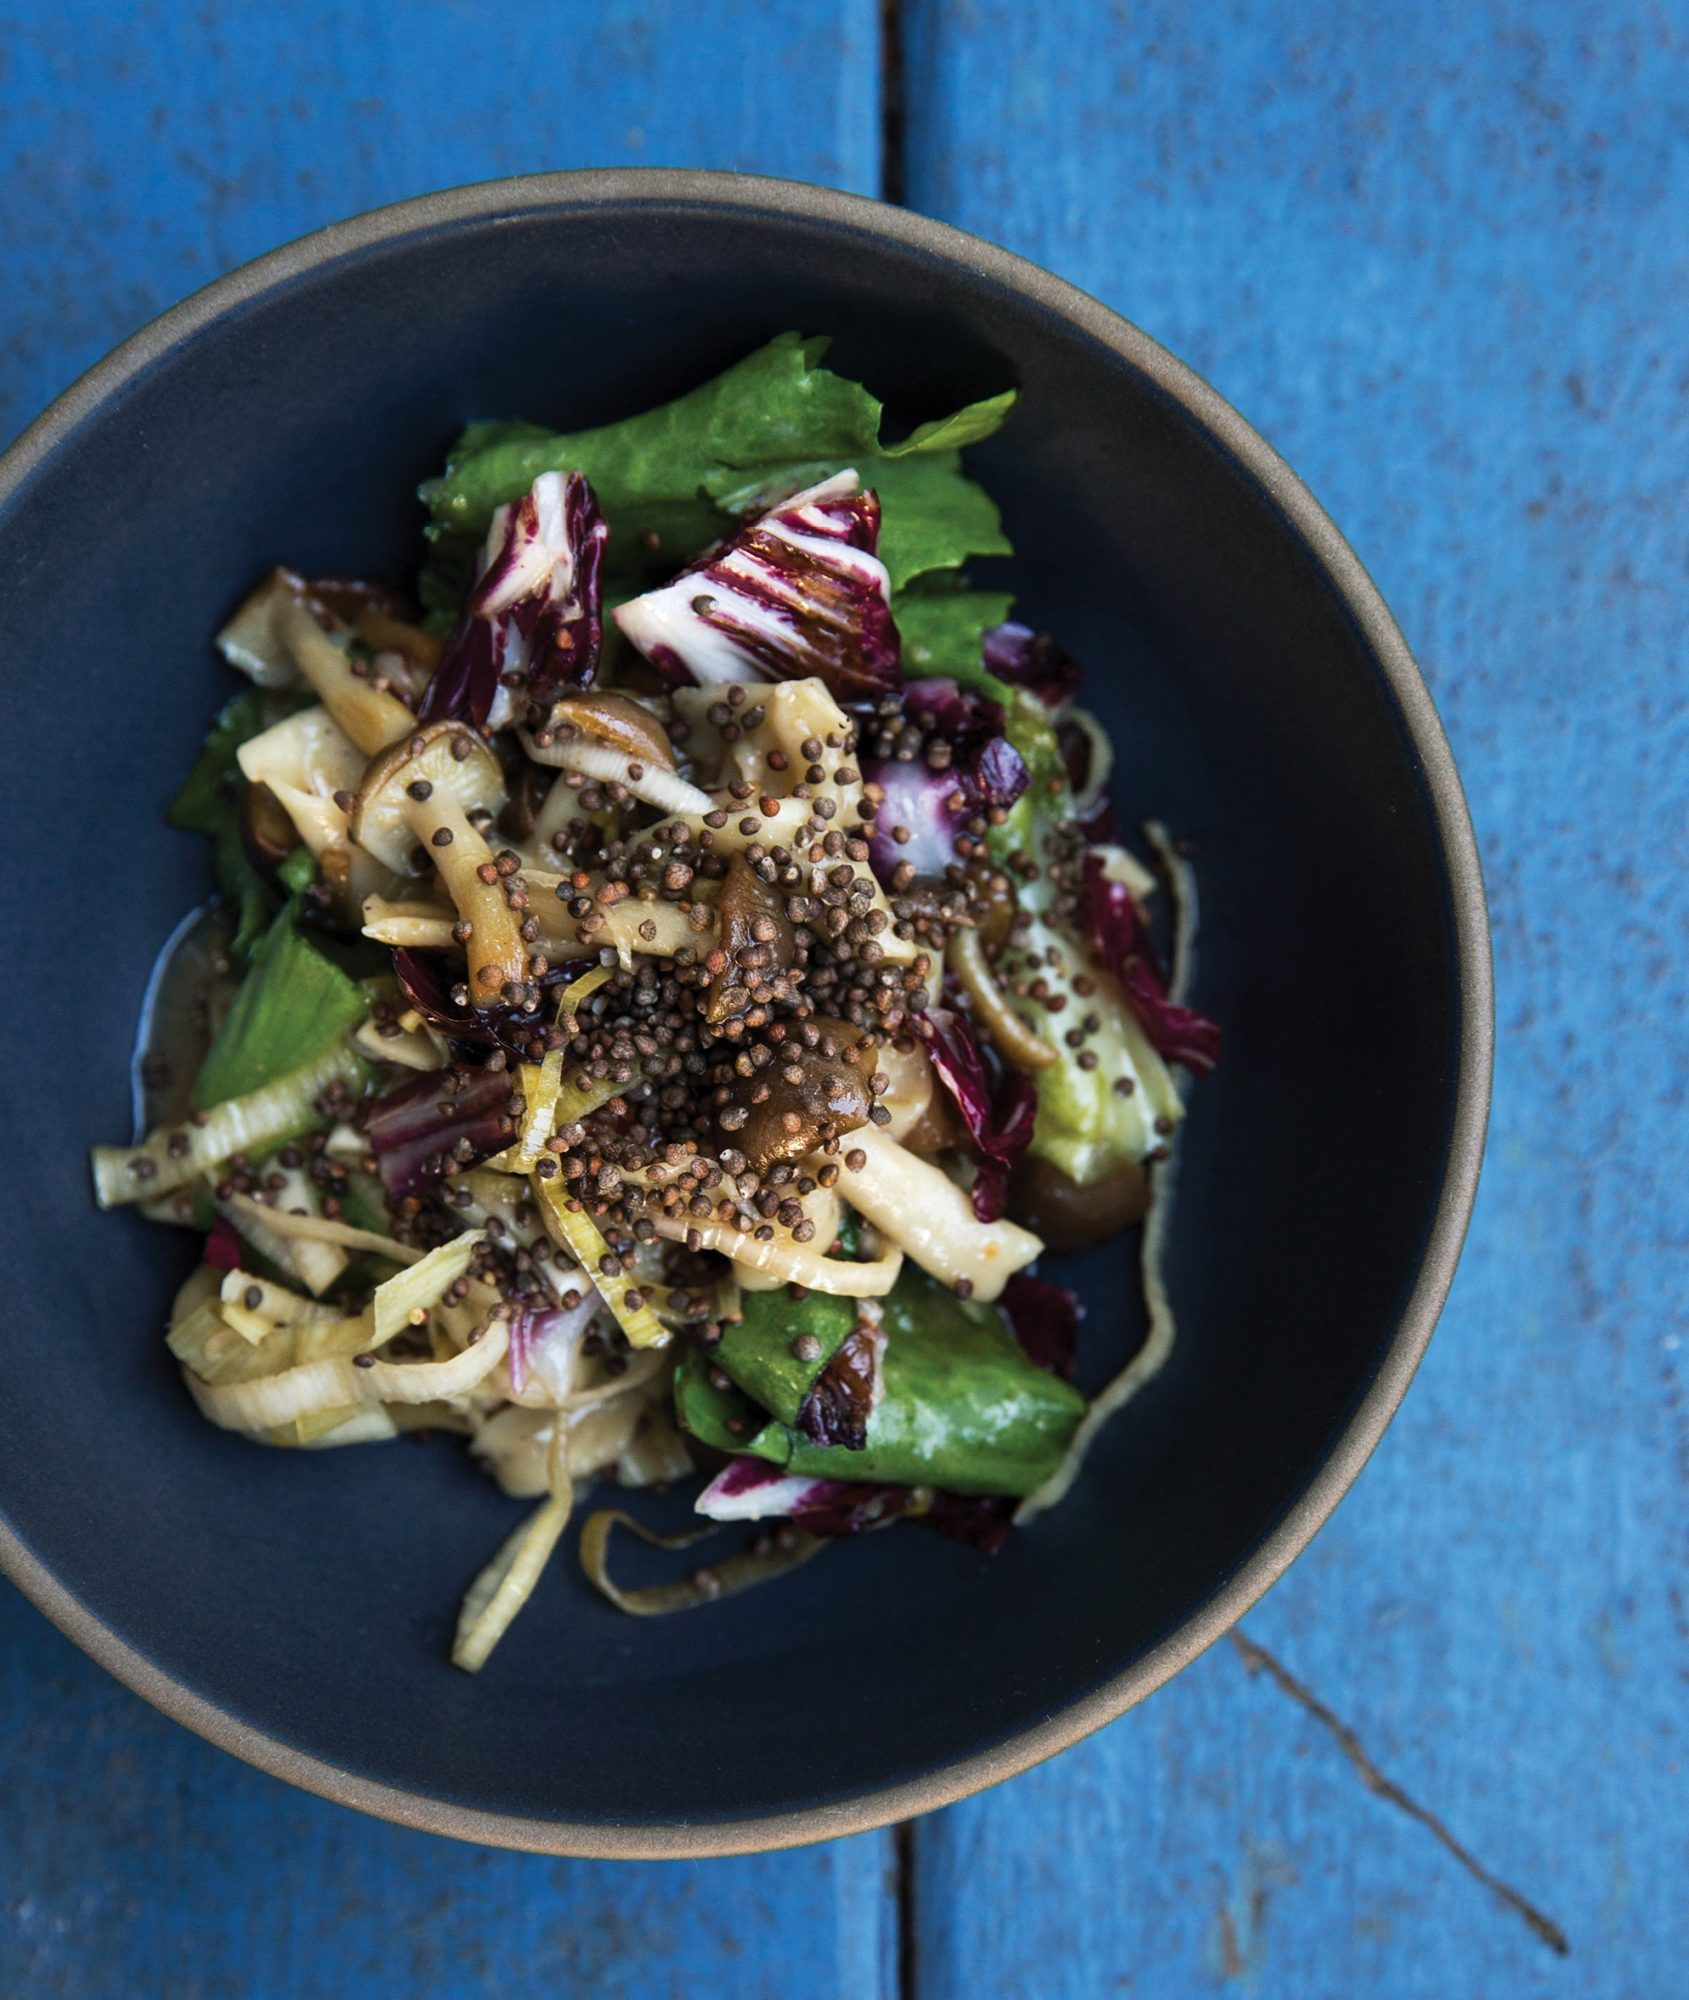 mushroom noodles in bowl with greens and wild sesame seeds